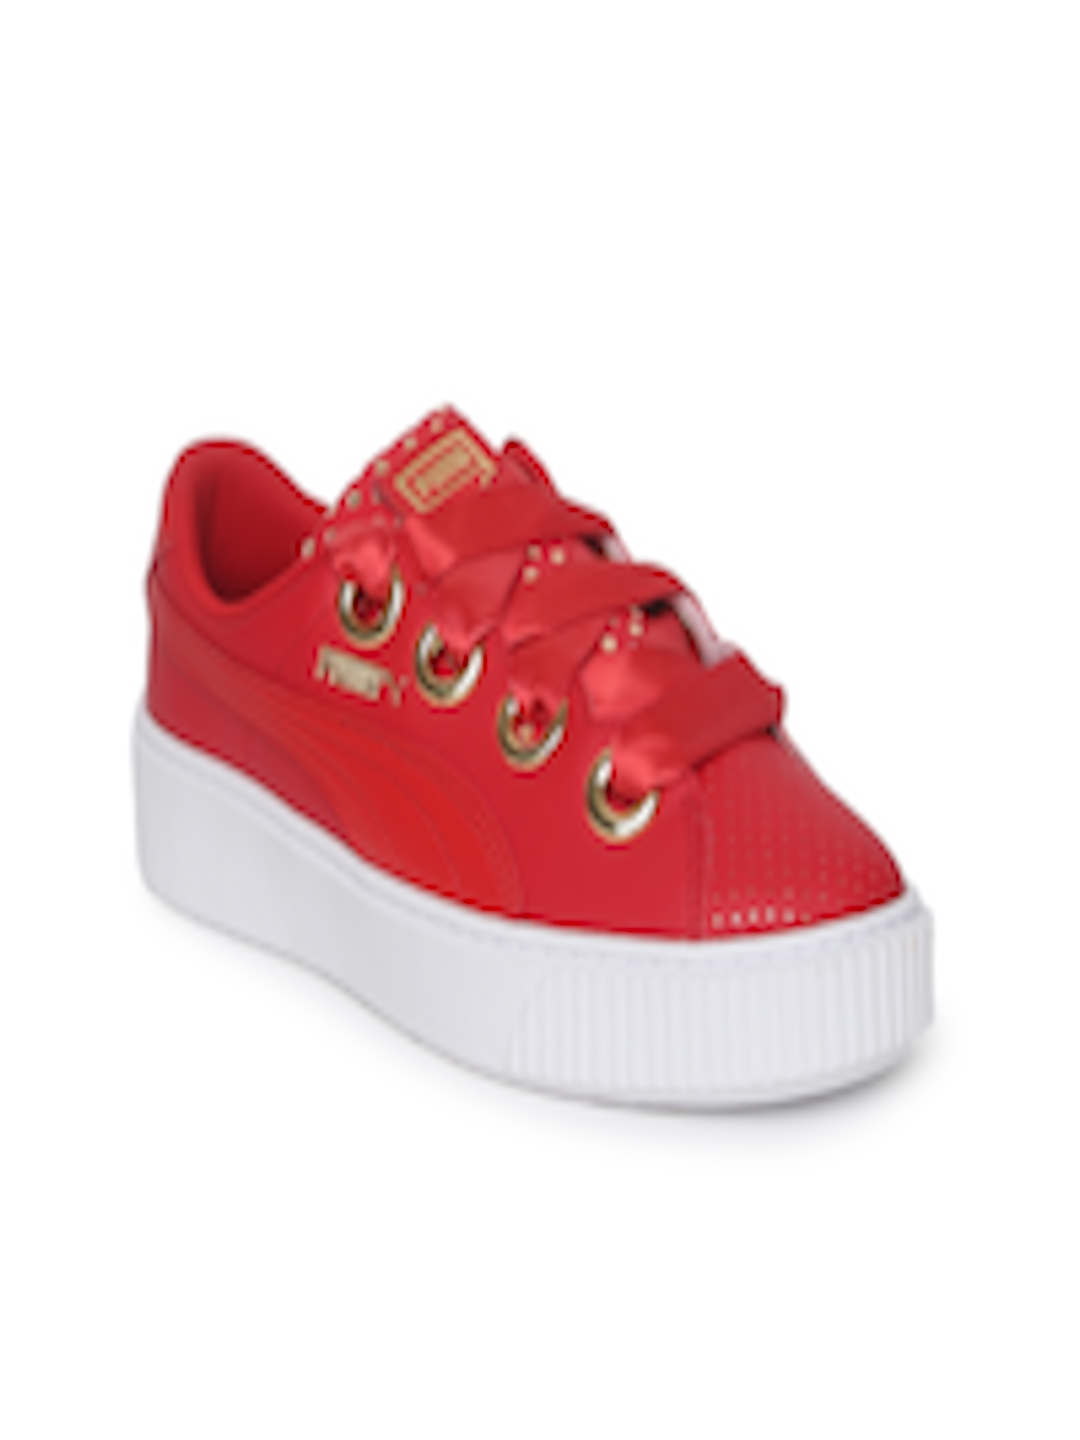 premium selection 3f52f e1413 Buy Puma Women Red Platform Kiss Ath Lux Sneakers - - Footwear for Women